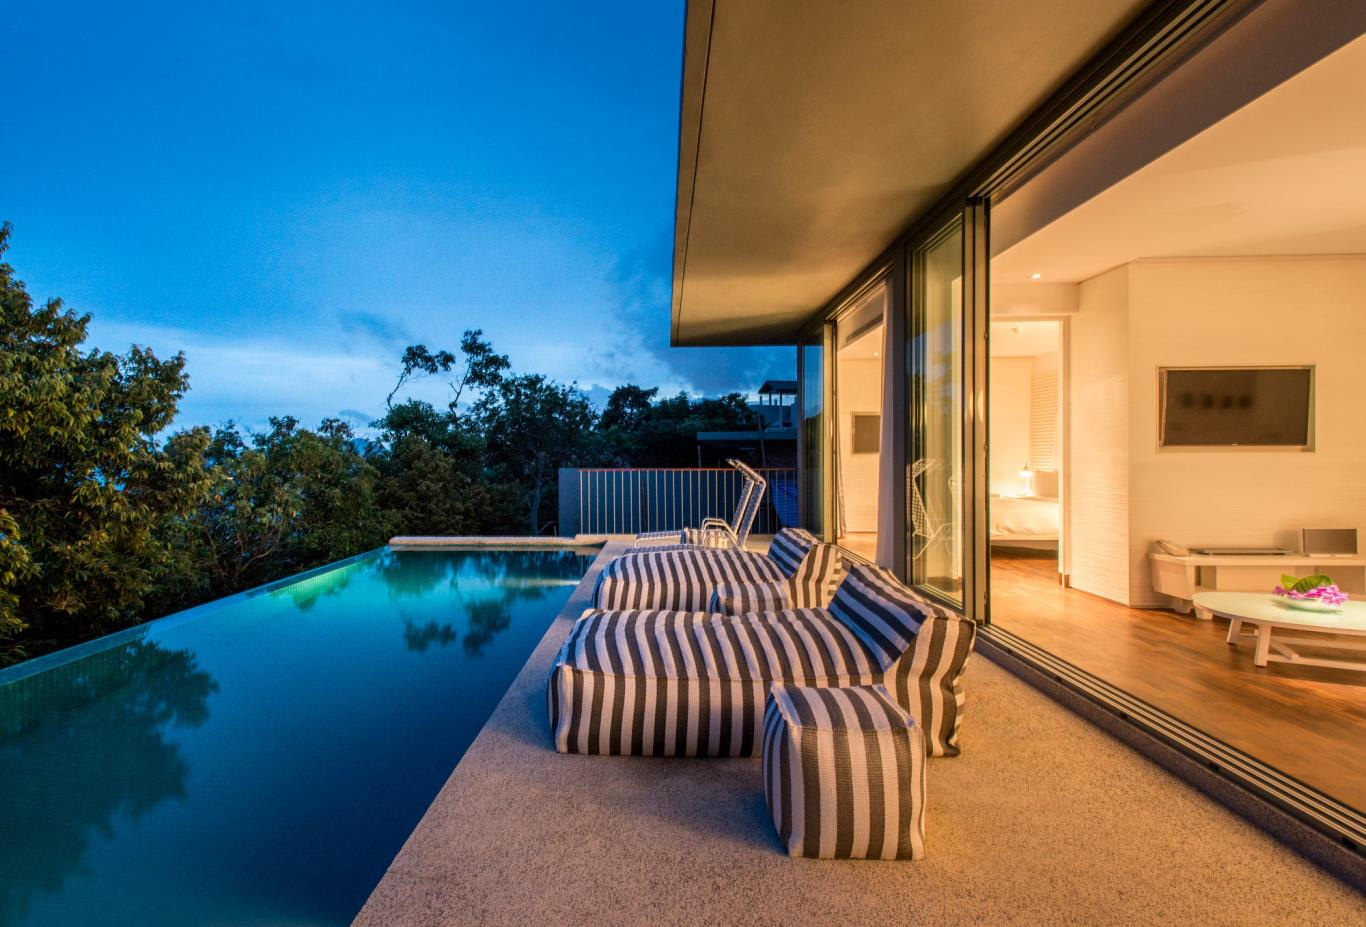 Two Bedroom Pool Villa Evening View